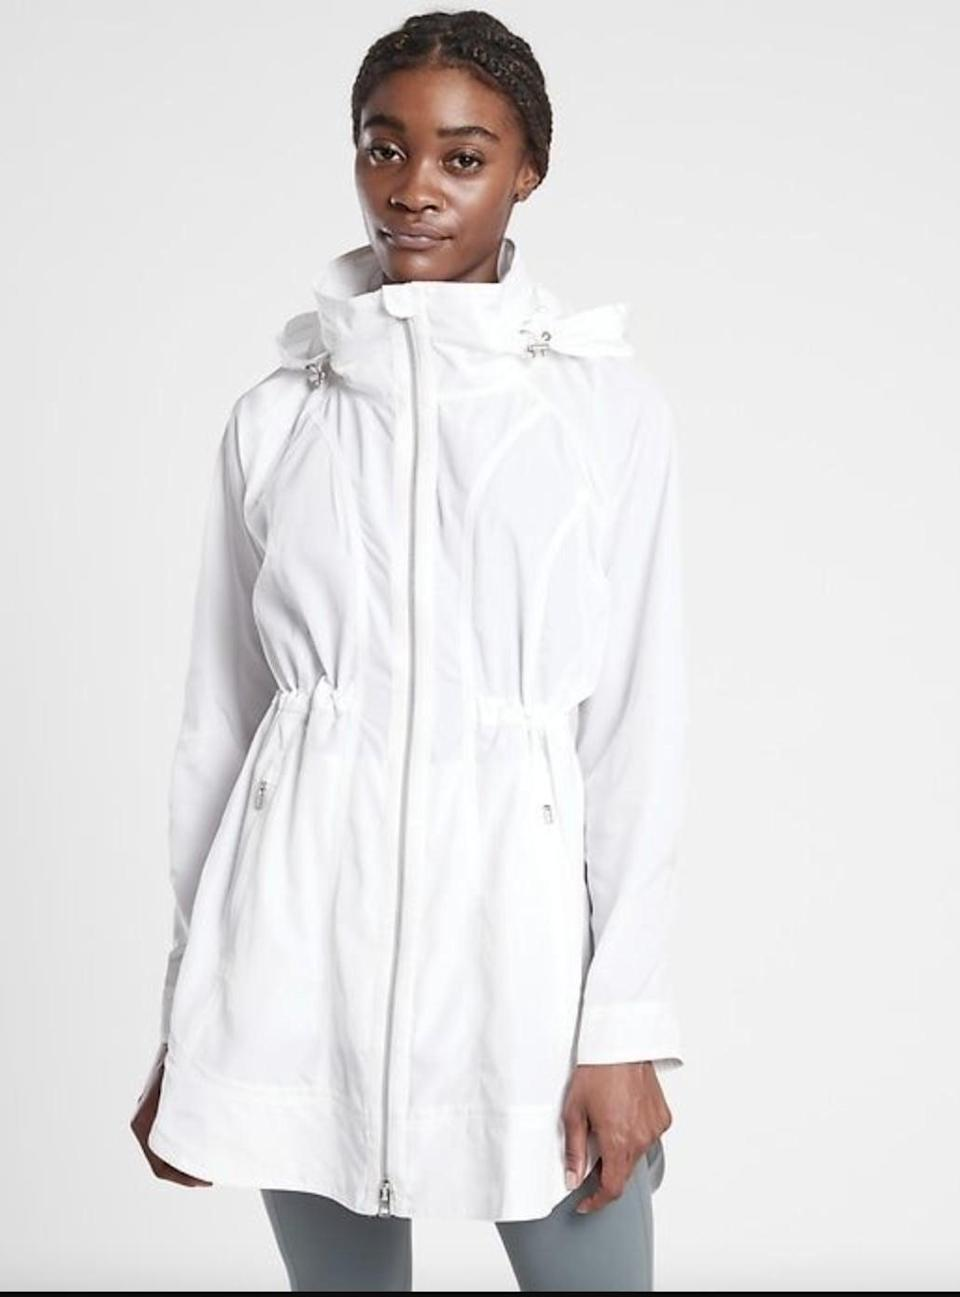 """<p>""""We have had a rainy season so far, but the weather is still warm, and I was in desperate need of a rain jacket that wouldn't make me hot. Thank goodness for <span>Athleta's Drip Drop Jacket</span> ($100, originally $149). The brand sent me one to try out, and it's been perfect for those hot, rainy days: it keeps me dry, and there is a hood that zips in or out if you need it."""" - Christina Stiehl, senior editor, Fitness</p>"""